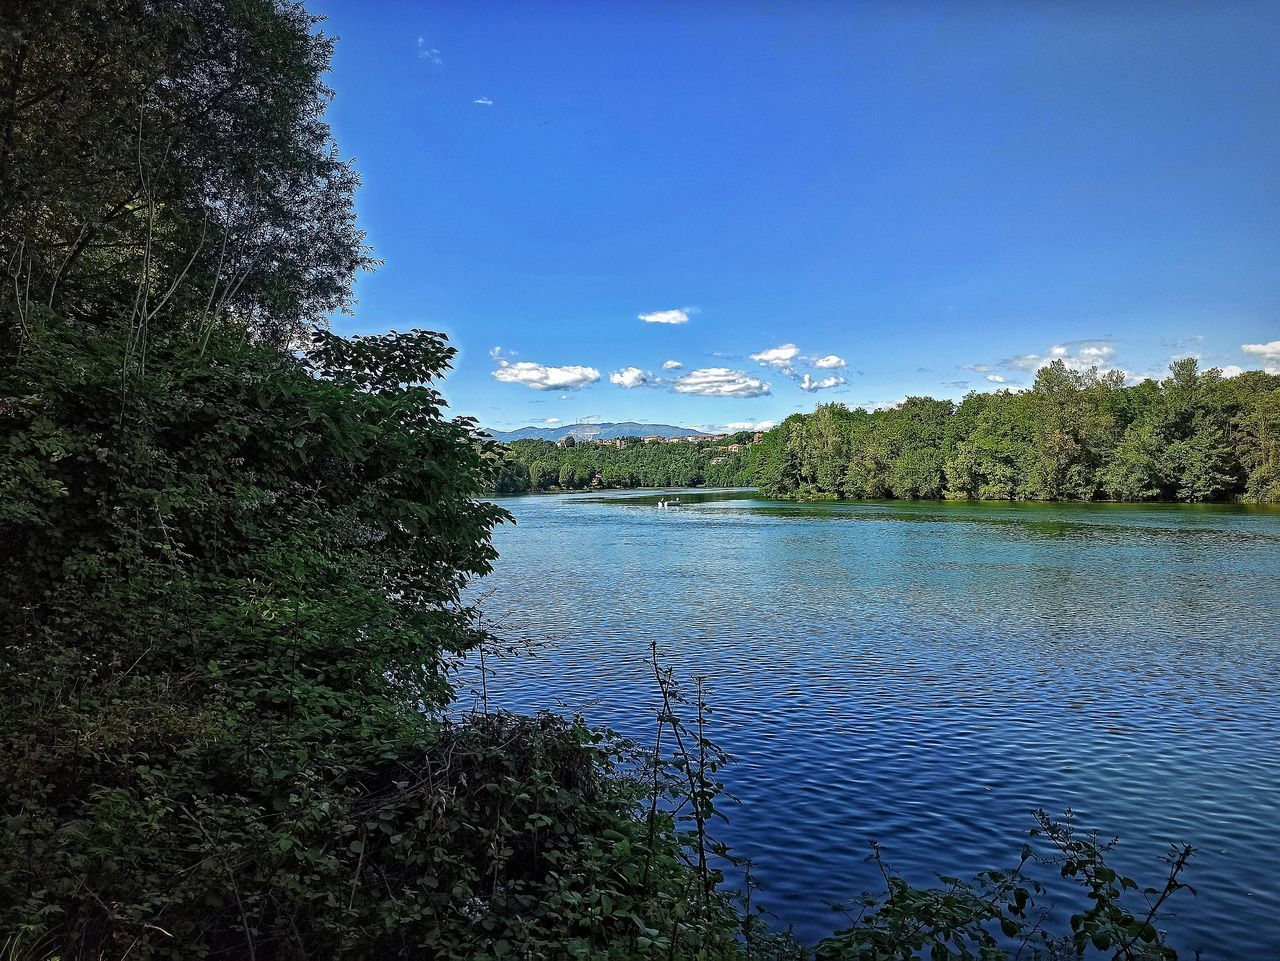 SCENIC VIEW OF LAKE AGAINST TREES AGAINST BLUE SKY